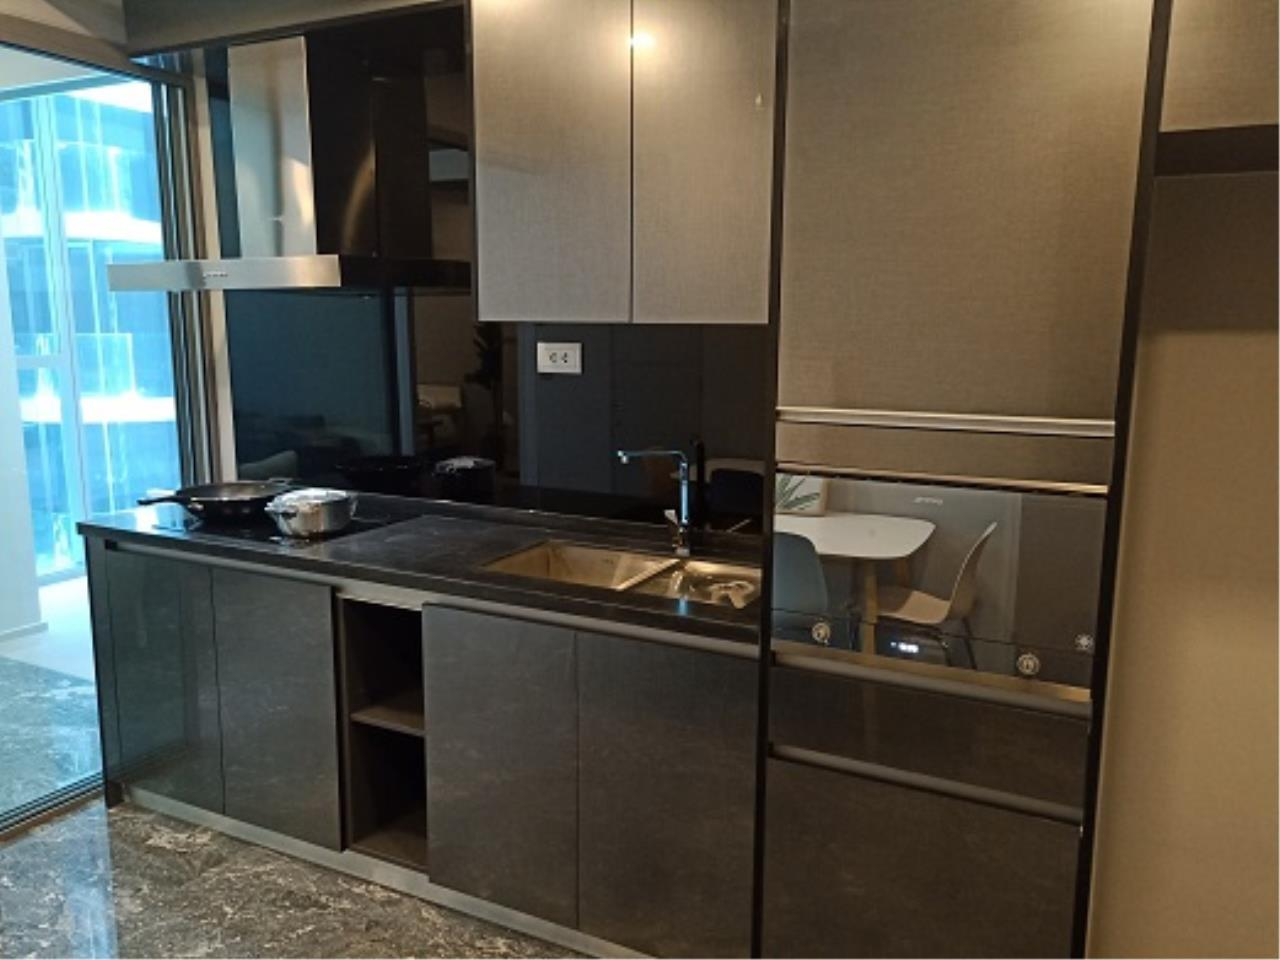 RE/MAX All Star Realty Agency's Ashton Residence 41 High Luxury Condo for sale/rent (BTS Phrom Pong) 3